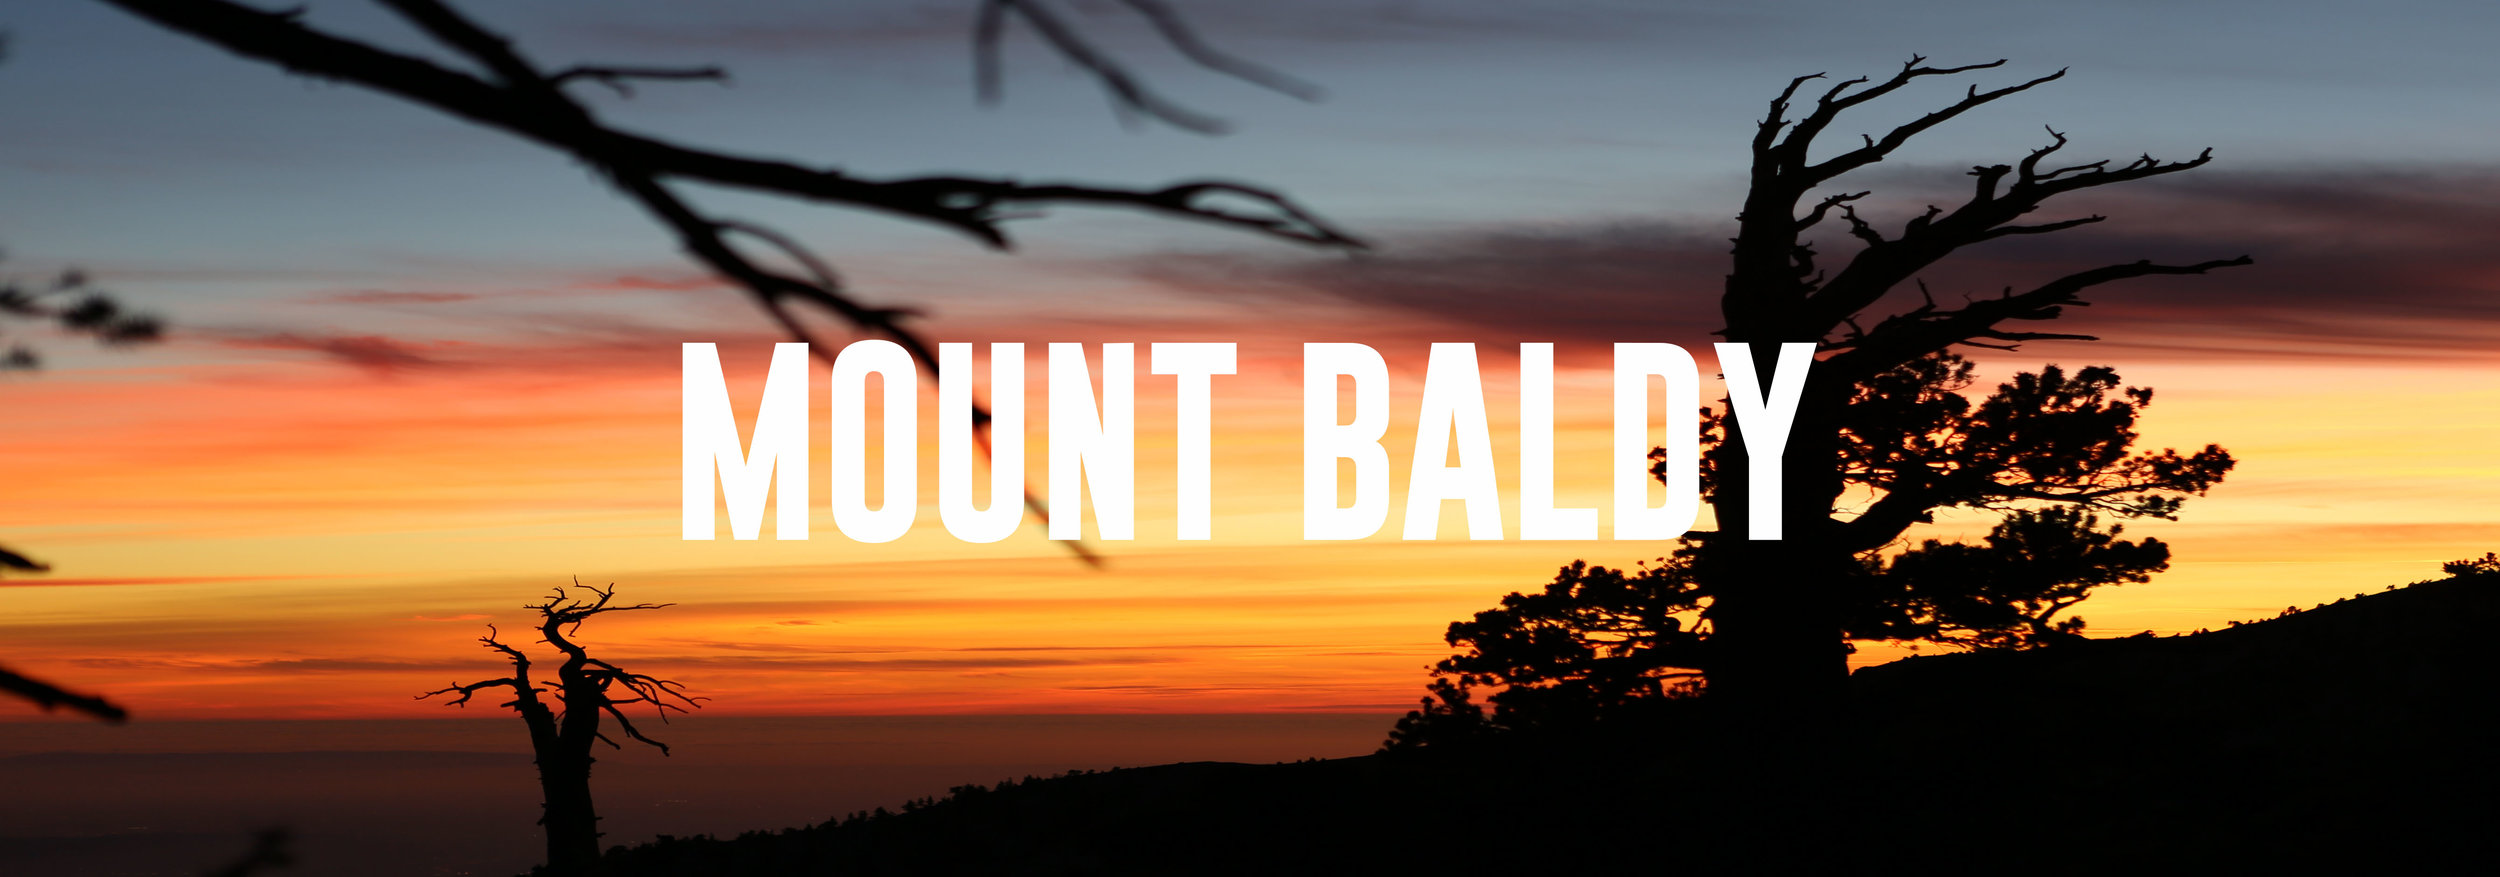 MOUNT BALDY__Titles_Cover_TEMPLATE-01.jpg